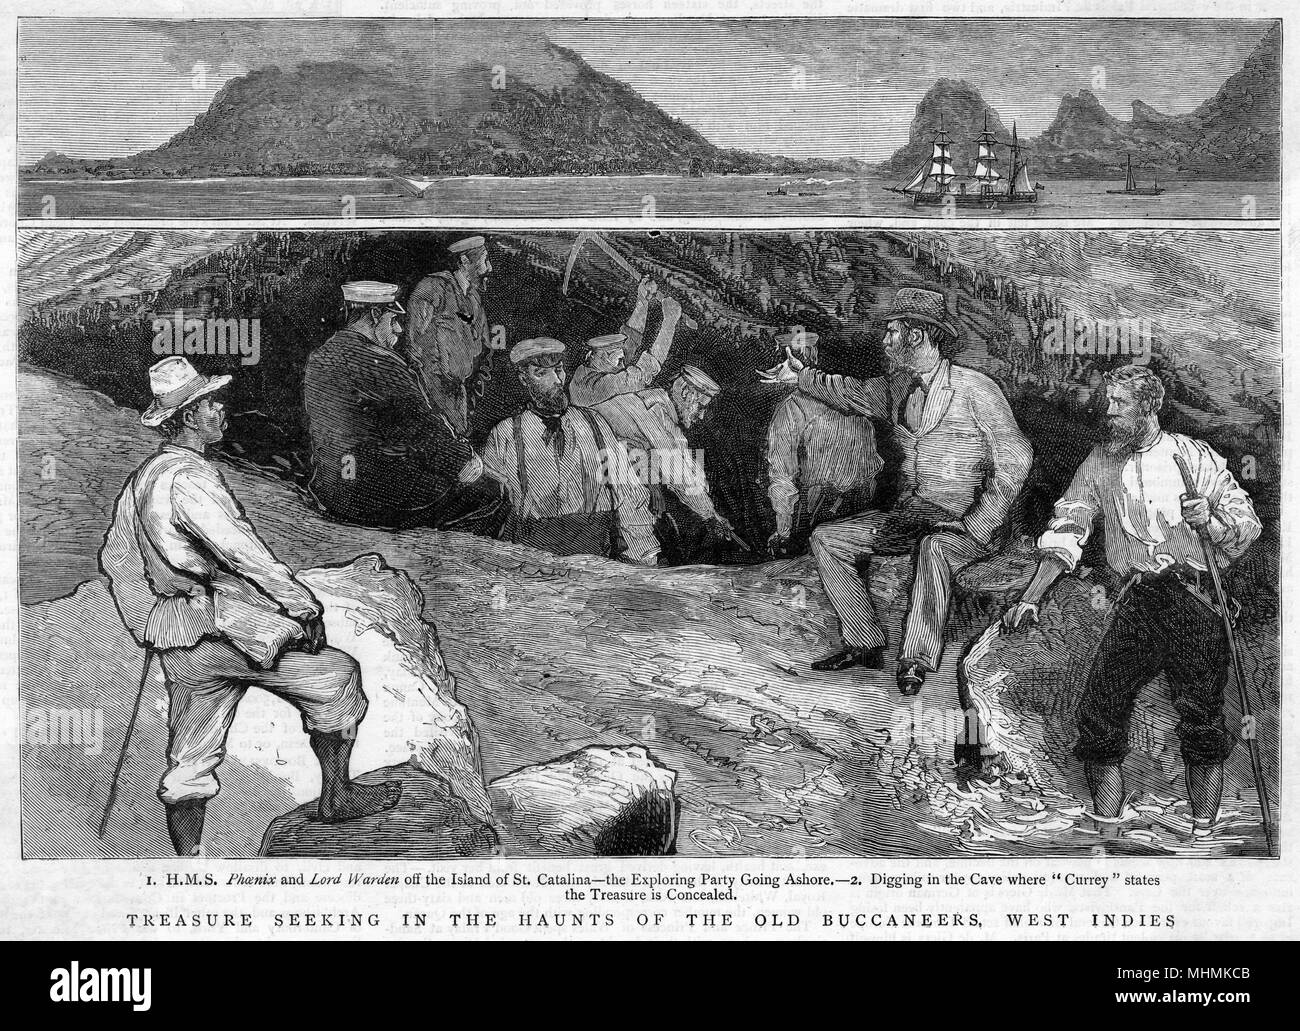 Digging in a cave, seeking treasure left behind by pirates in the West Indies.       Date: 1882 - Stock Image